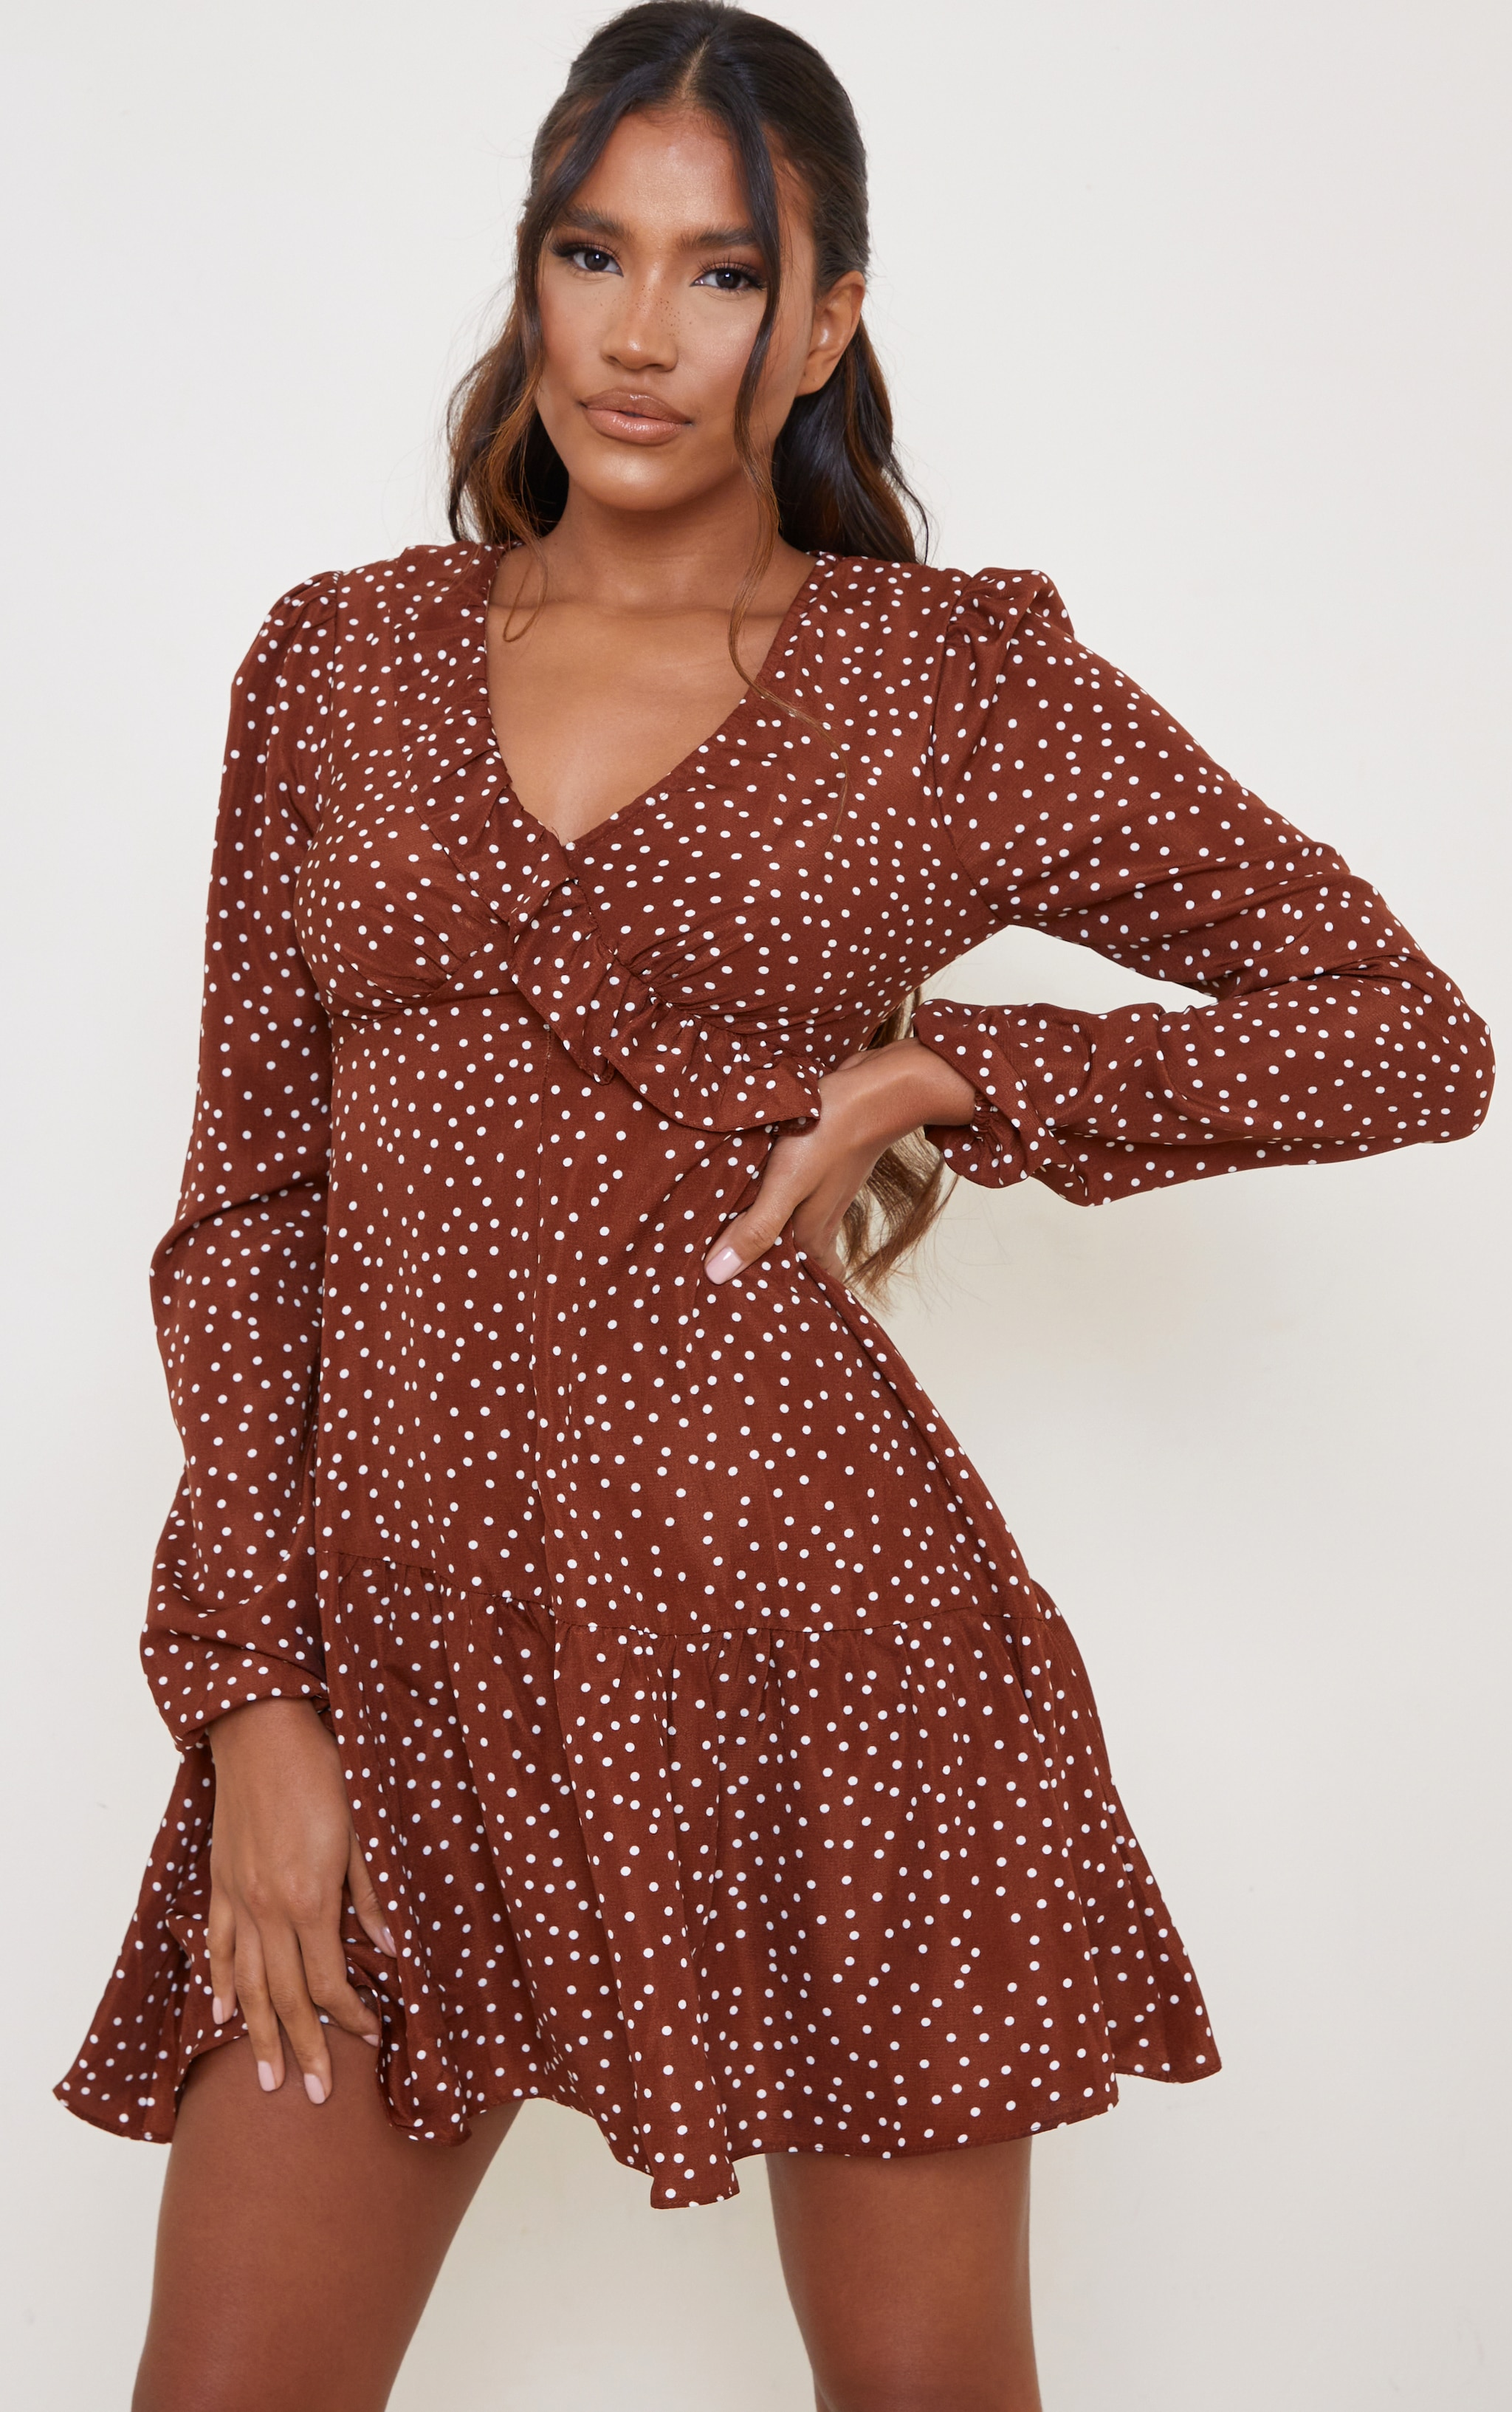 Chocolate Polka Dot Frill Bust Detail Drop Hem Tea Dress 1